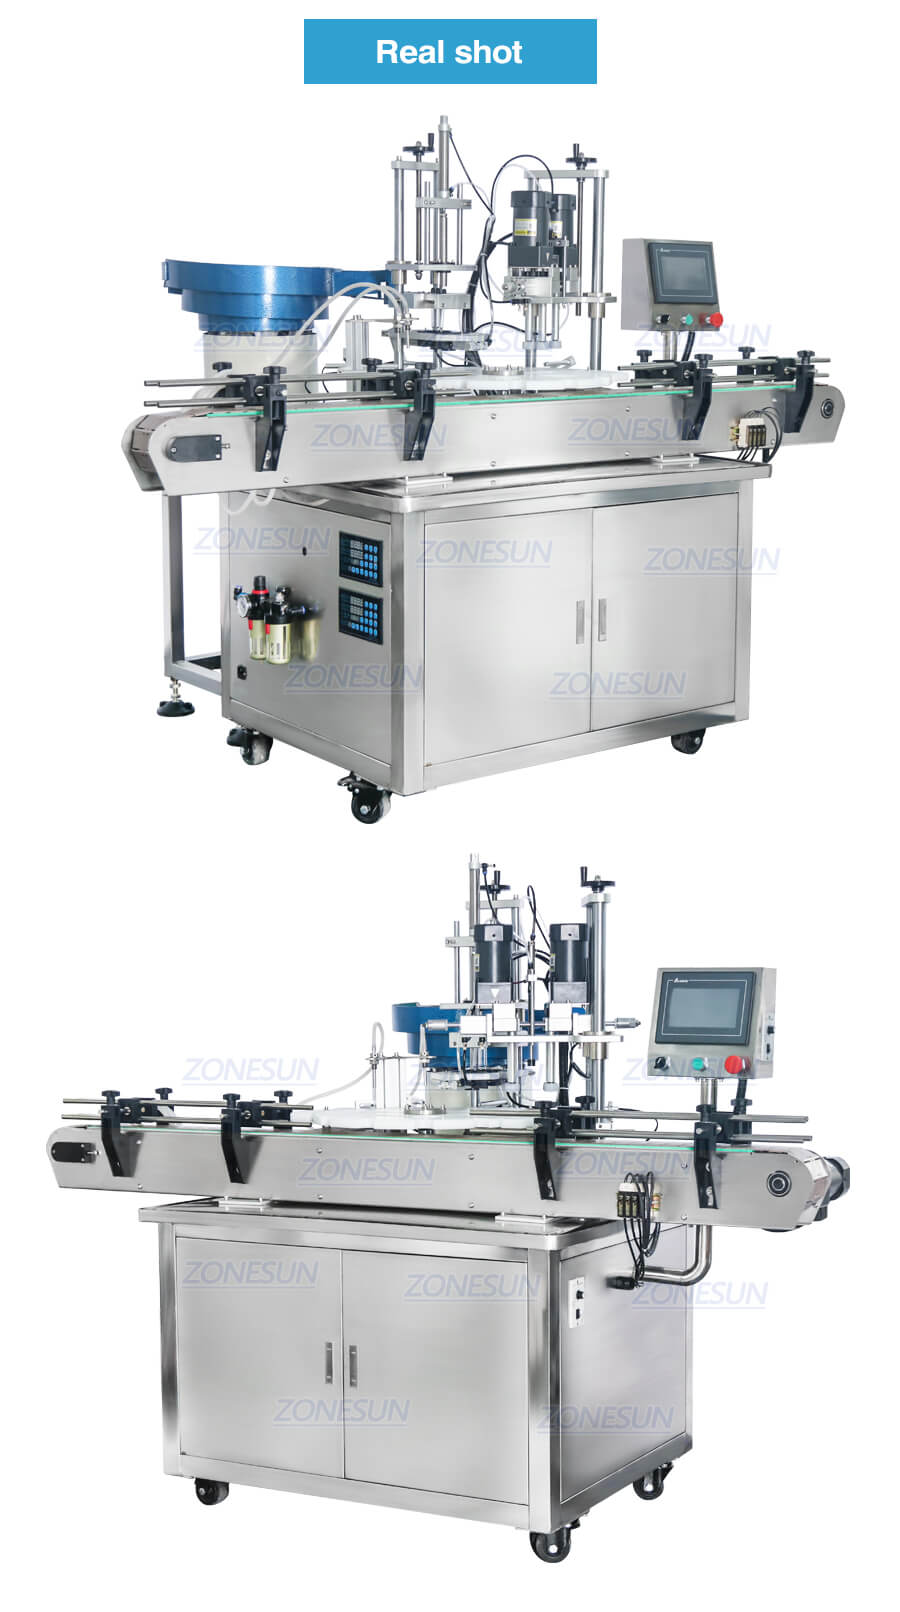 Real shot of ZS-AFC1 Monoblock Filling Capping Machine